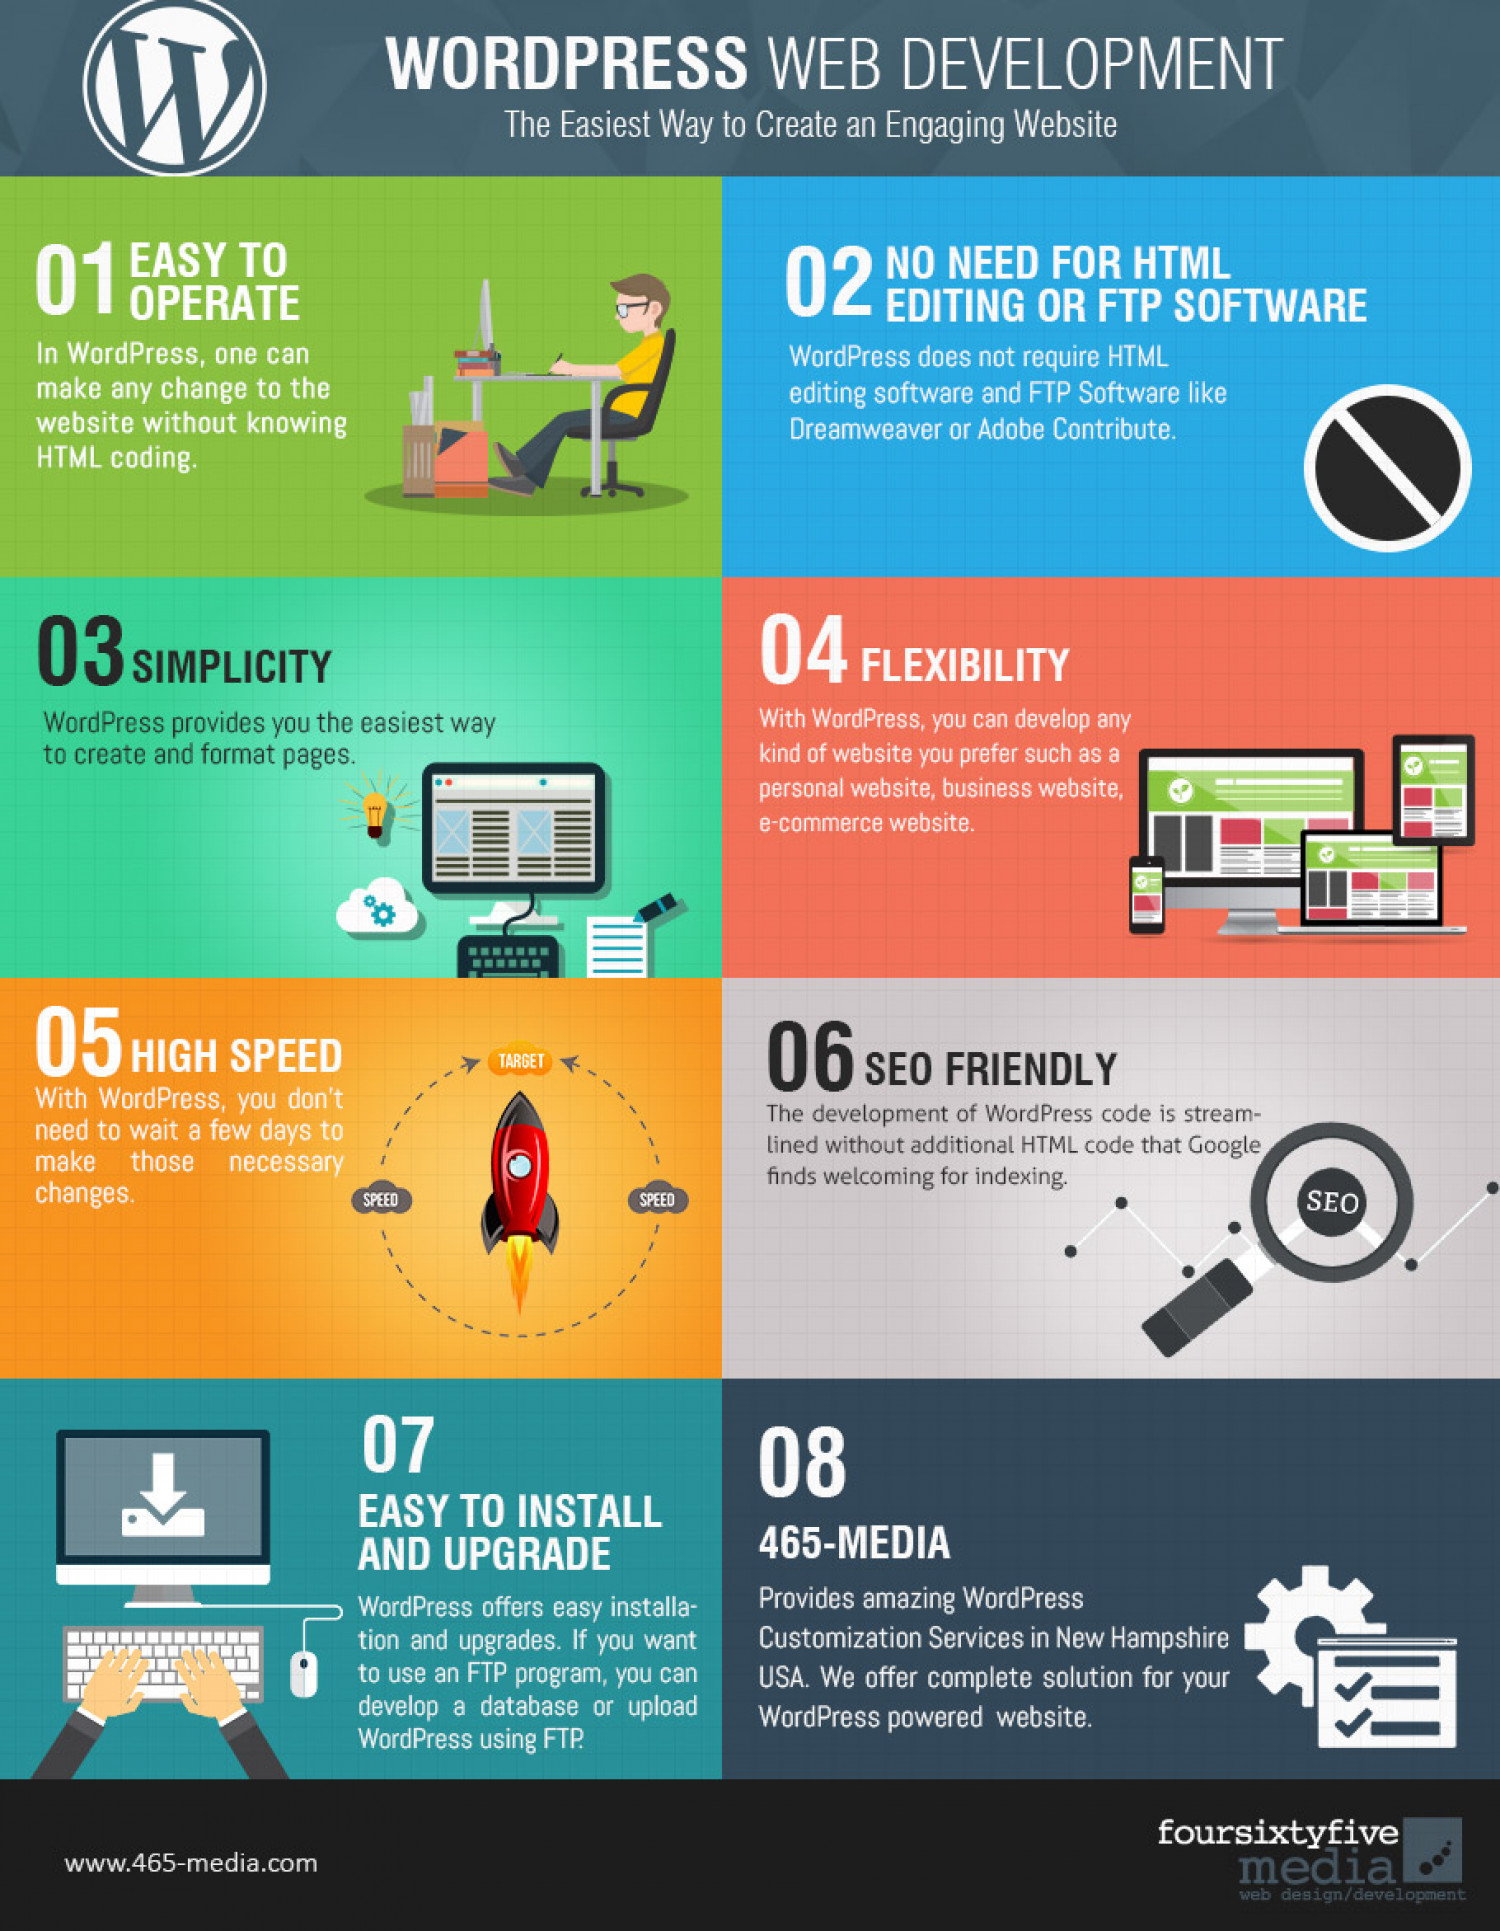 WordPress Web Development: The Easiest Way to Create an Engaging Website Infographic